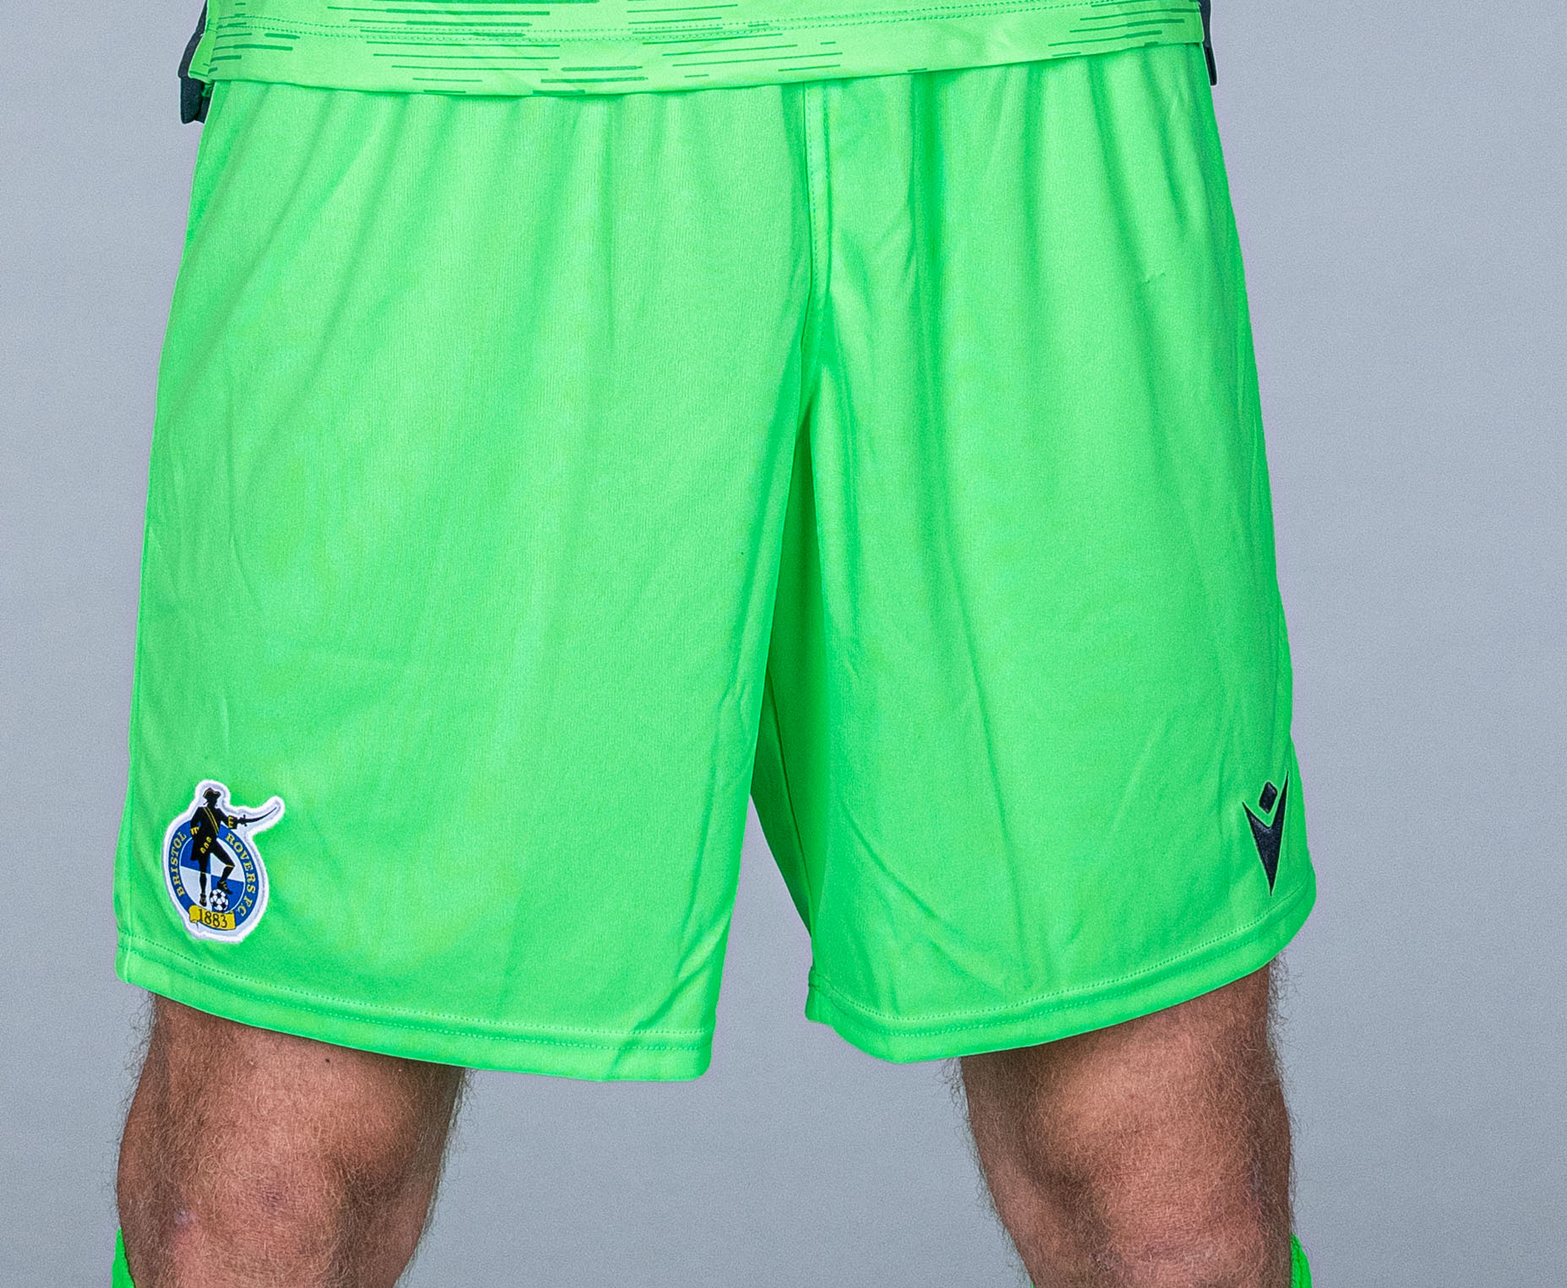 Bristol Rovers Green Goalkeeper Shorts 2020/21 Junior